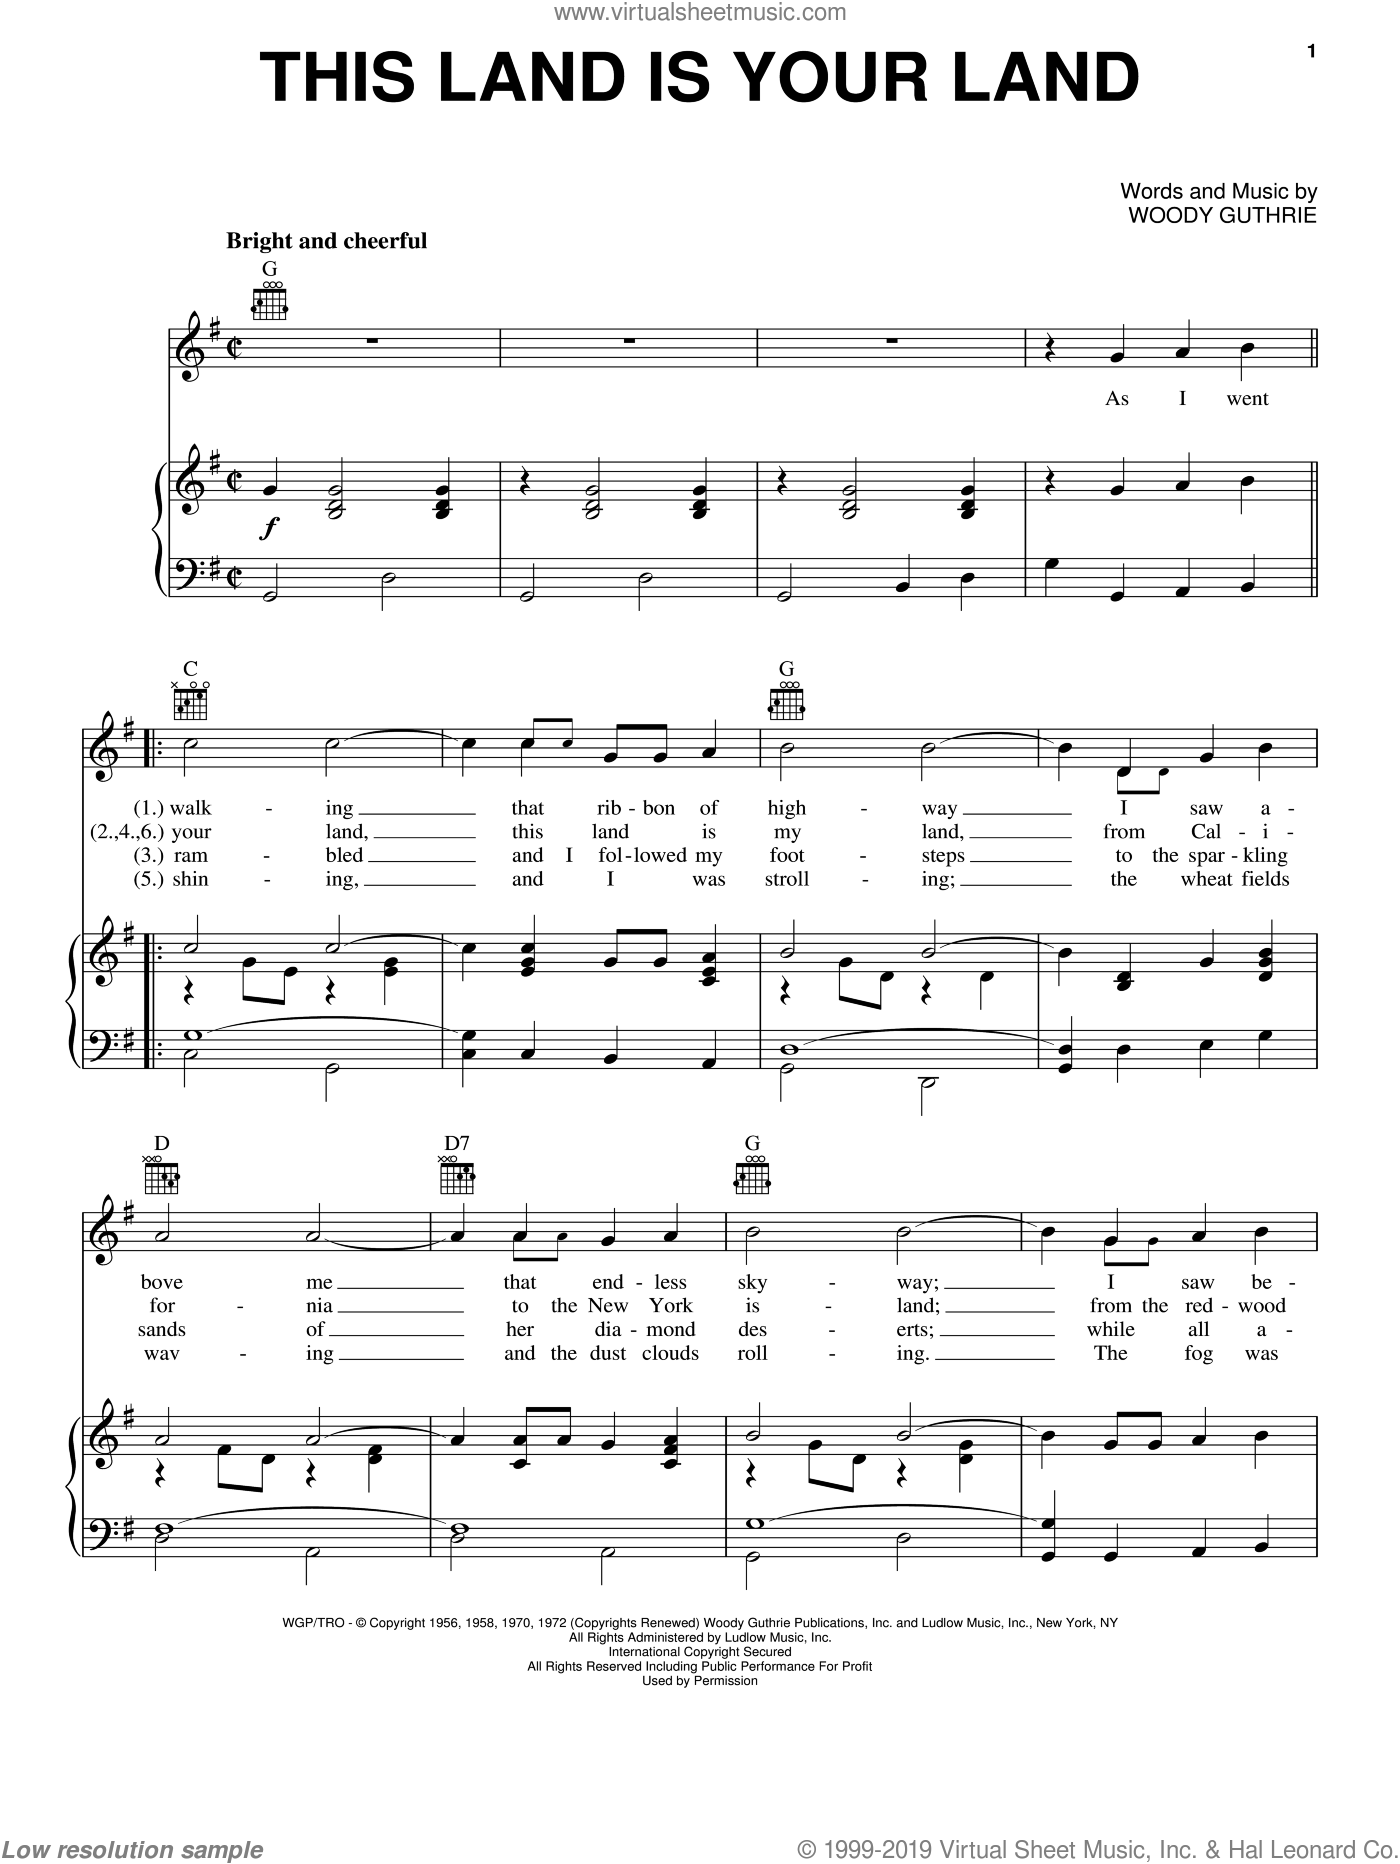 This Land Is Your Land sheet music for voice, piano or guitar by Woody Guthrie